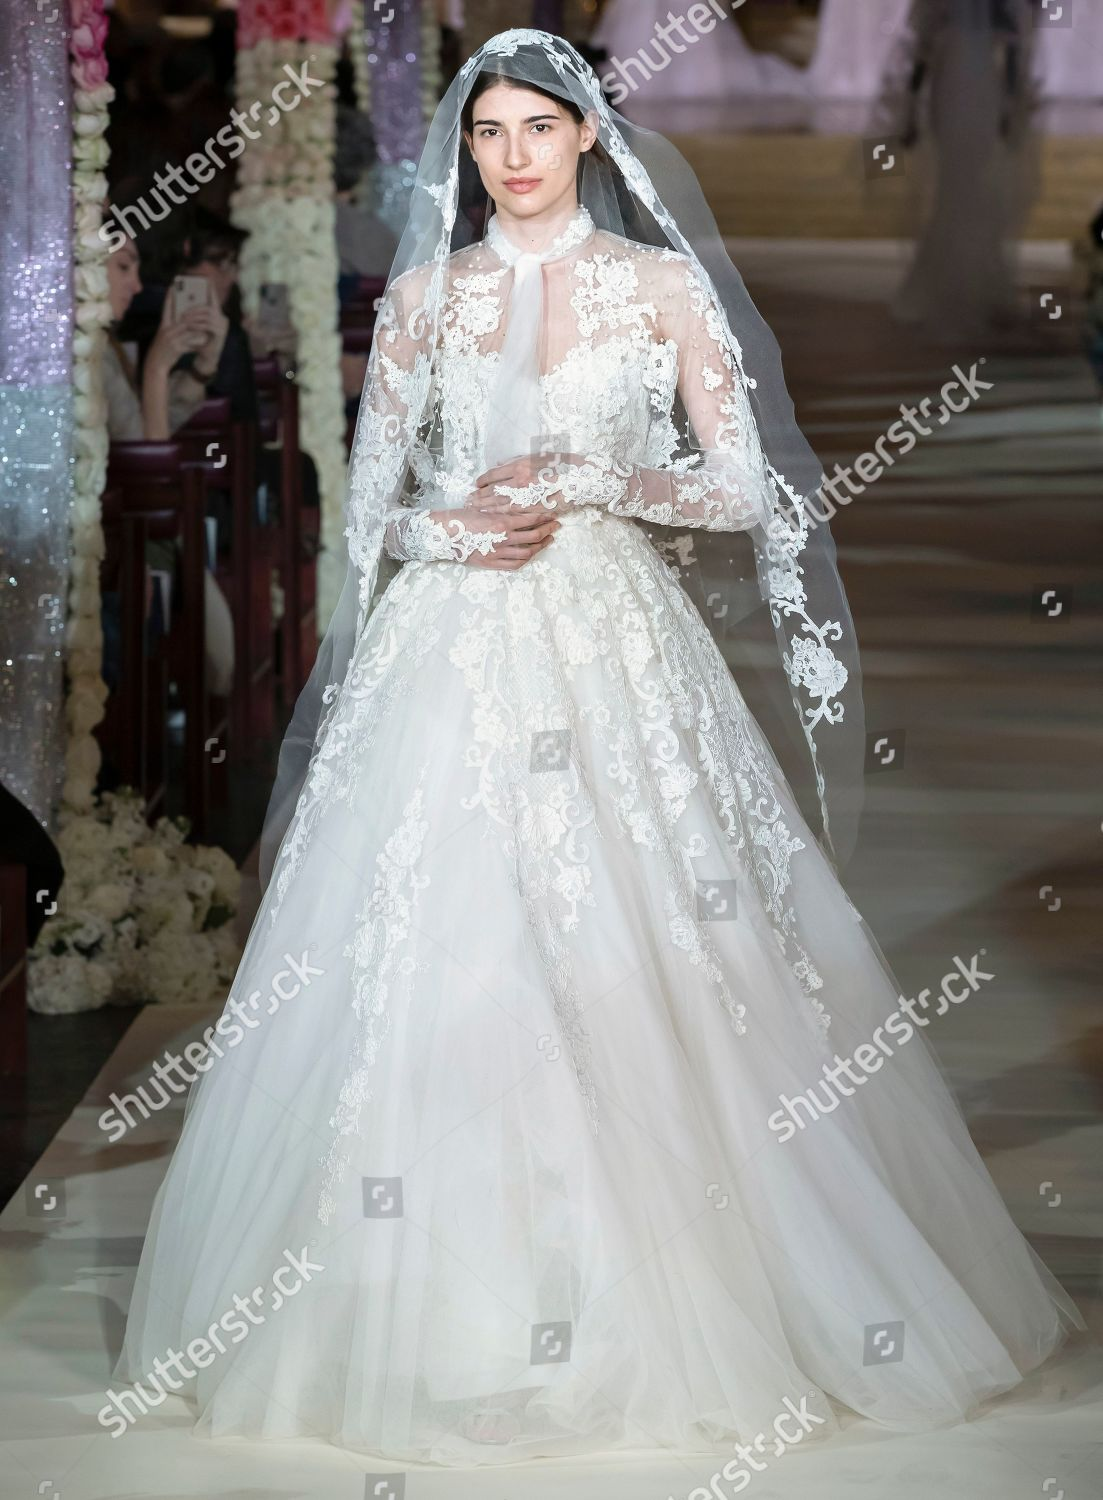 914f5f62610a Reem Acra Bridal show, Runway, Spring 2020, Bridal Fashion Week, New York,  USA Stock Image by Ovidiu Hrubaru for editorial use, Apr 11, 2019